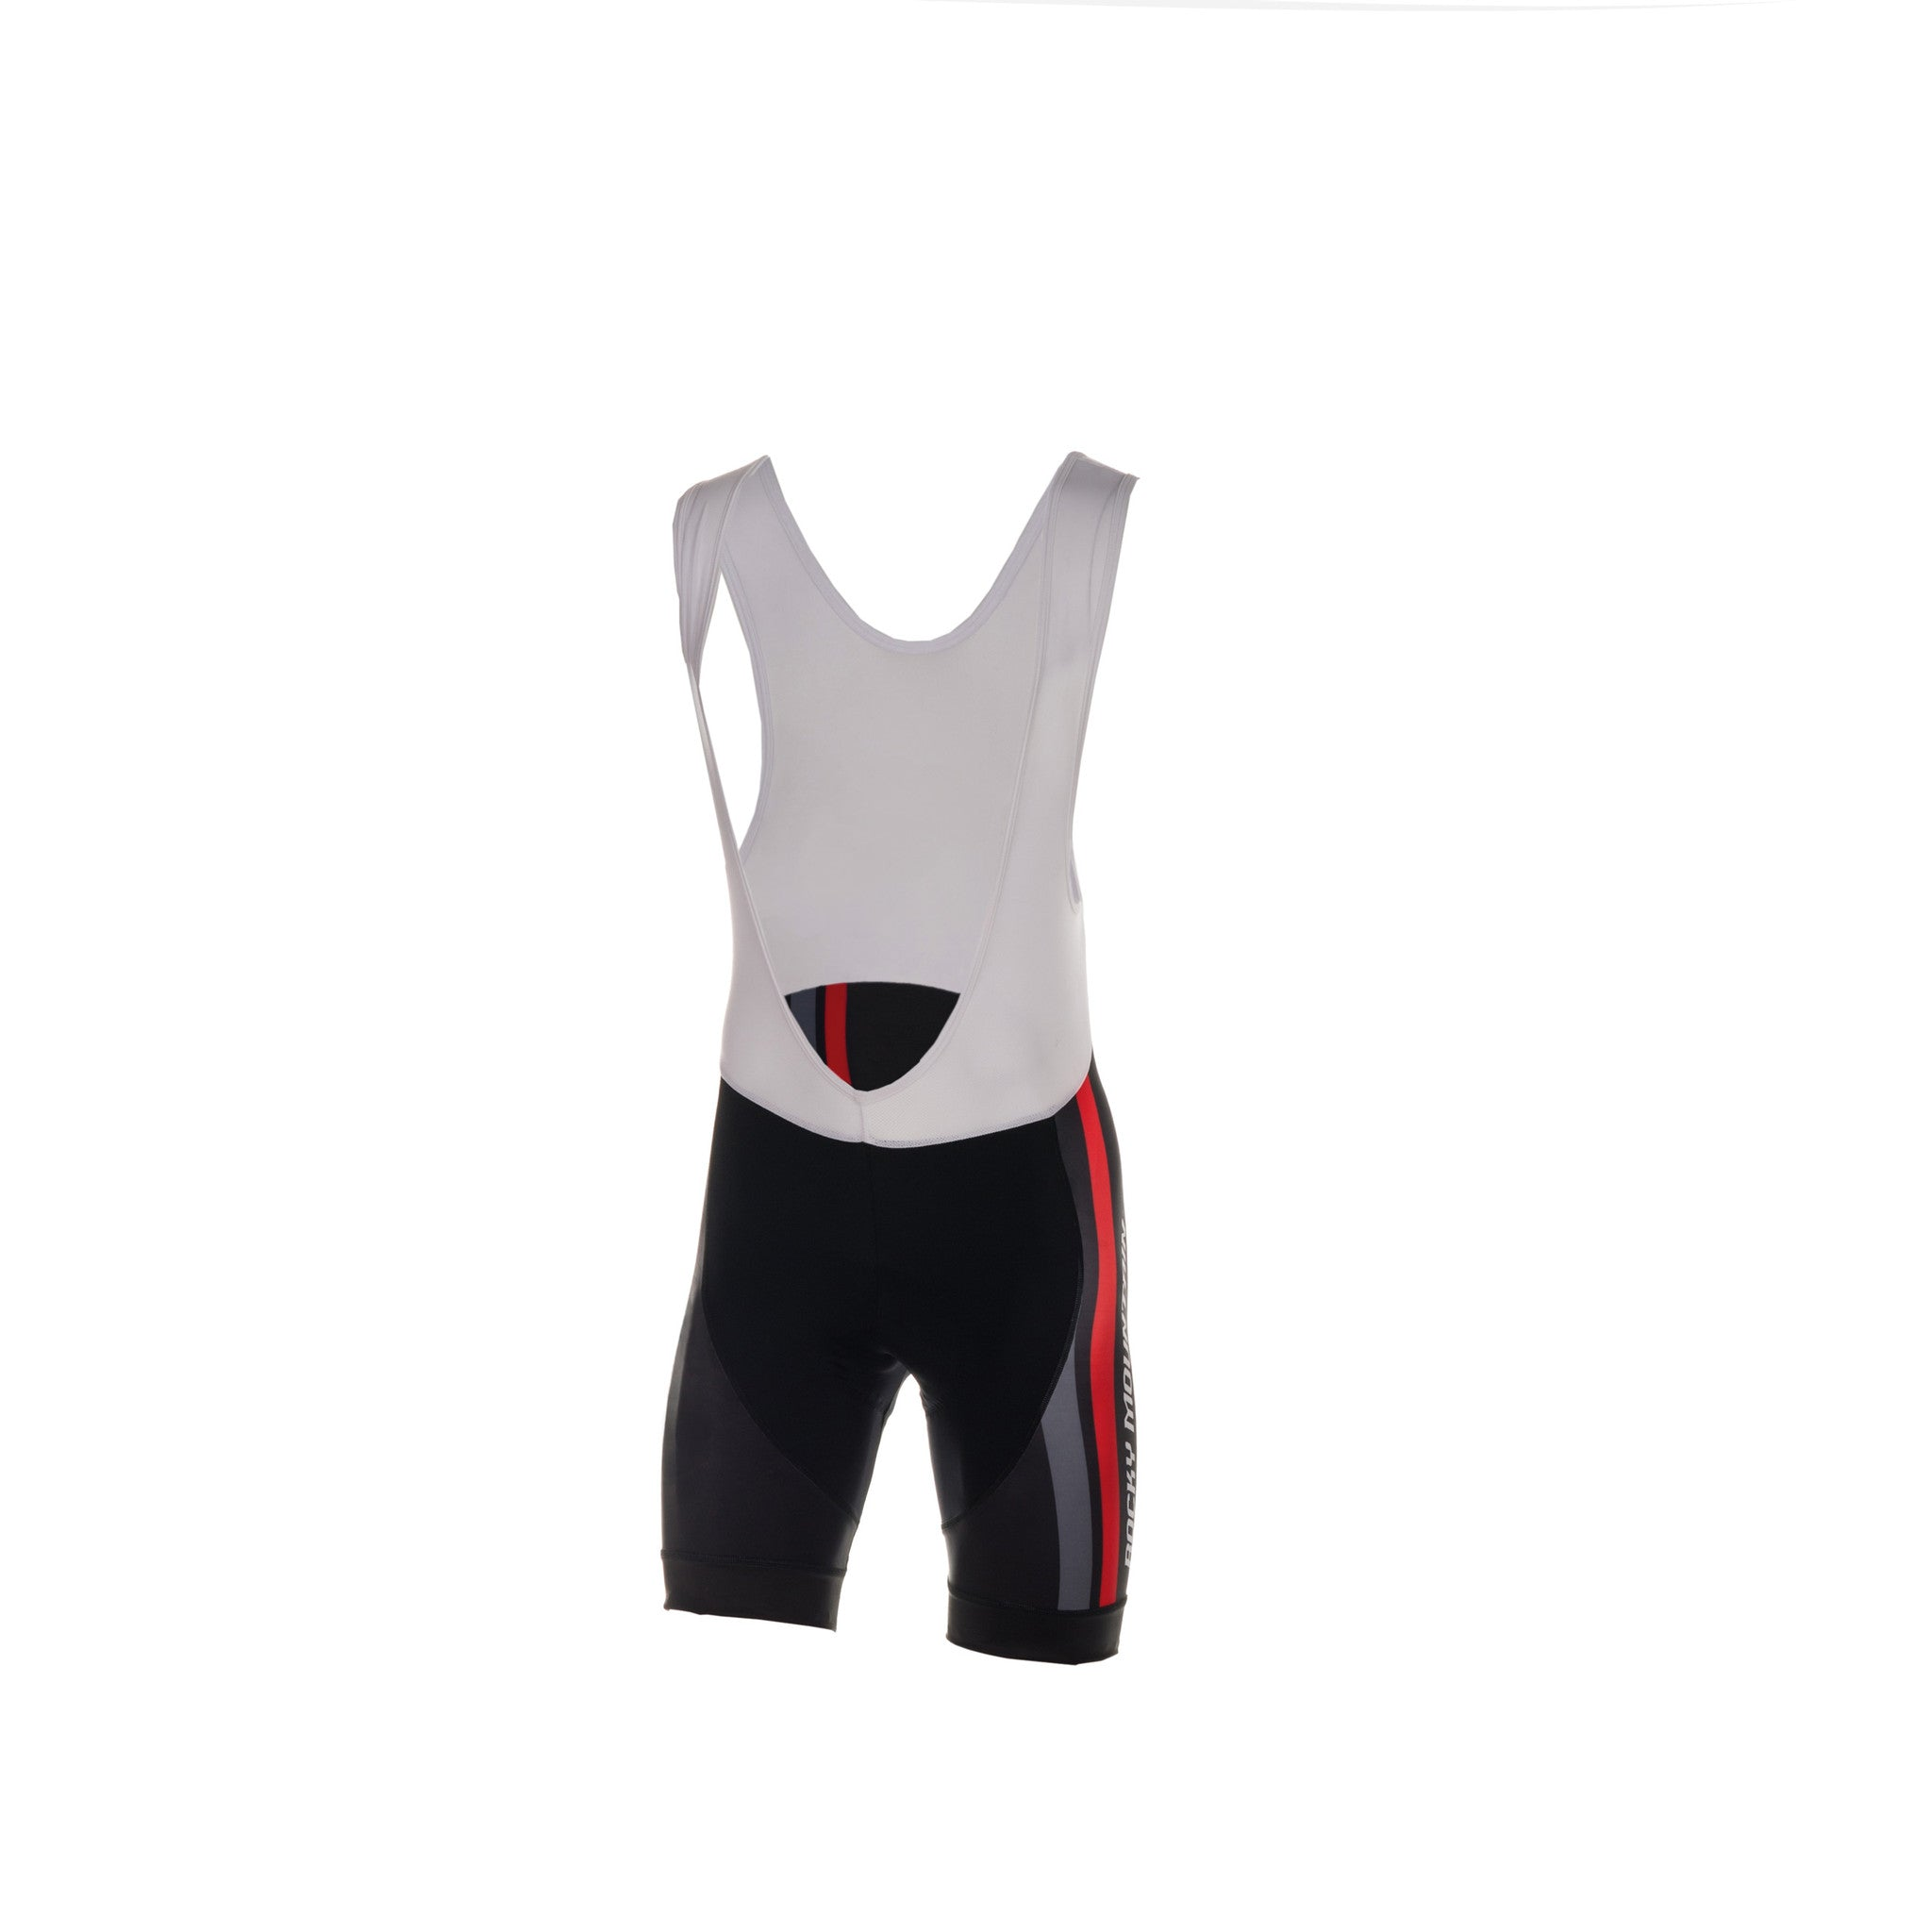 FACTORY REPLICA BIBSHORT